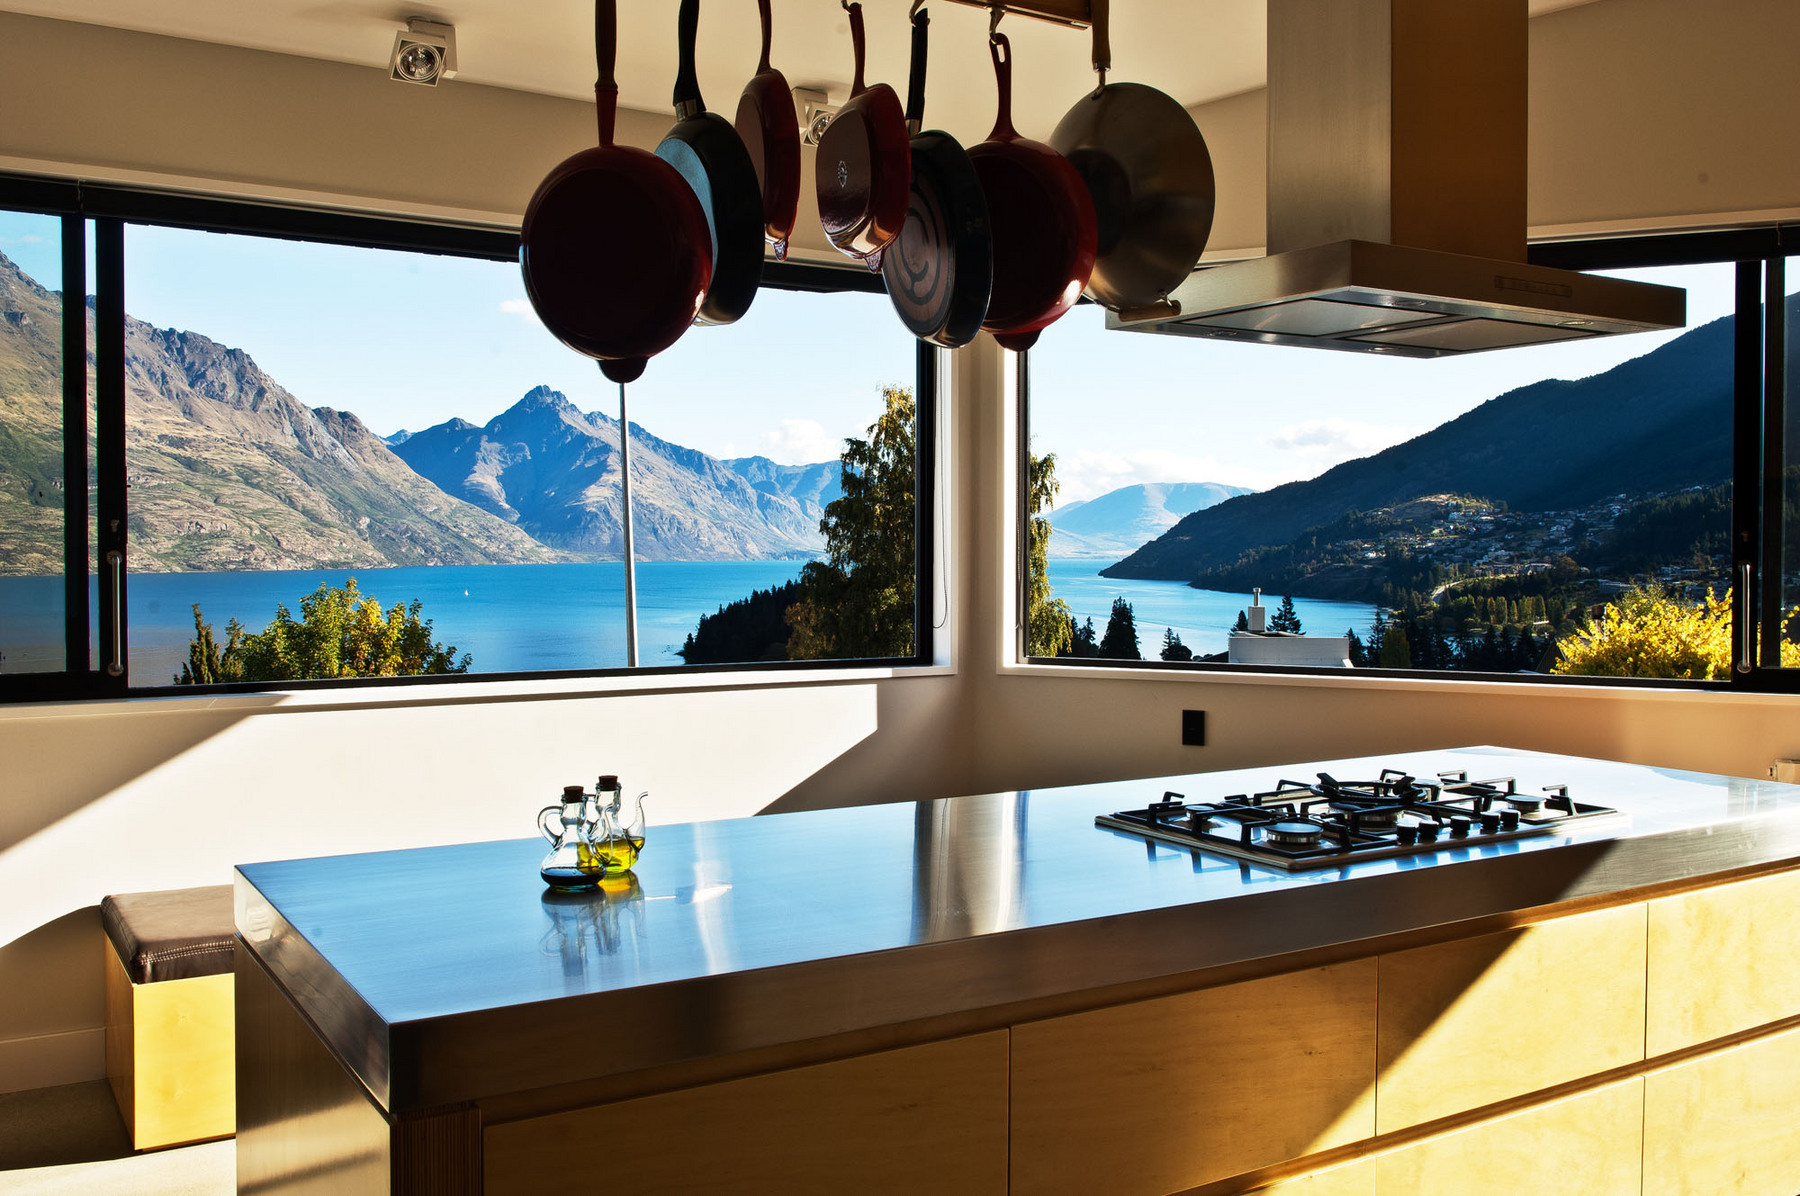 The kitchen captures outstanding views while also maintaining privacy from the street